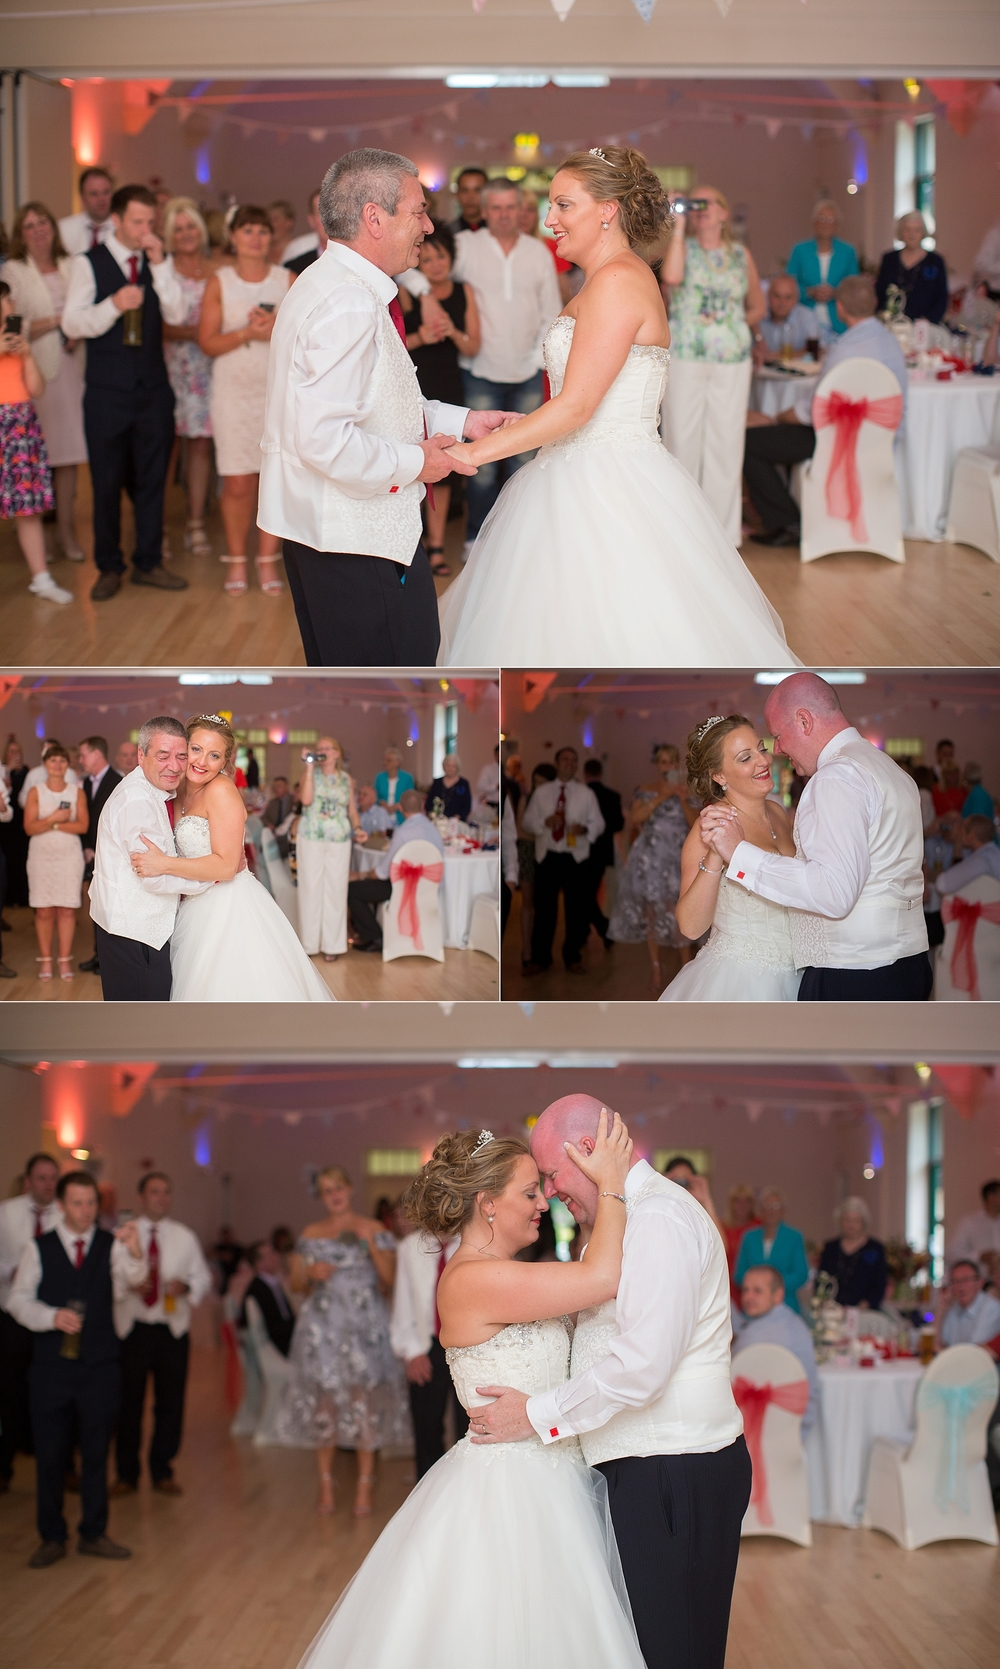 wedding photographer floral hall tunstall stoke on trent 19.jpg